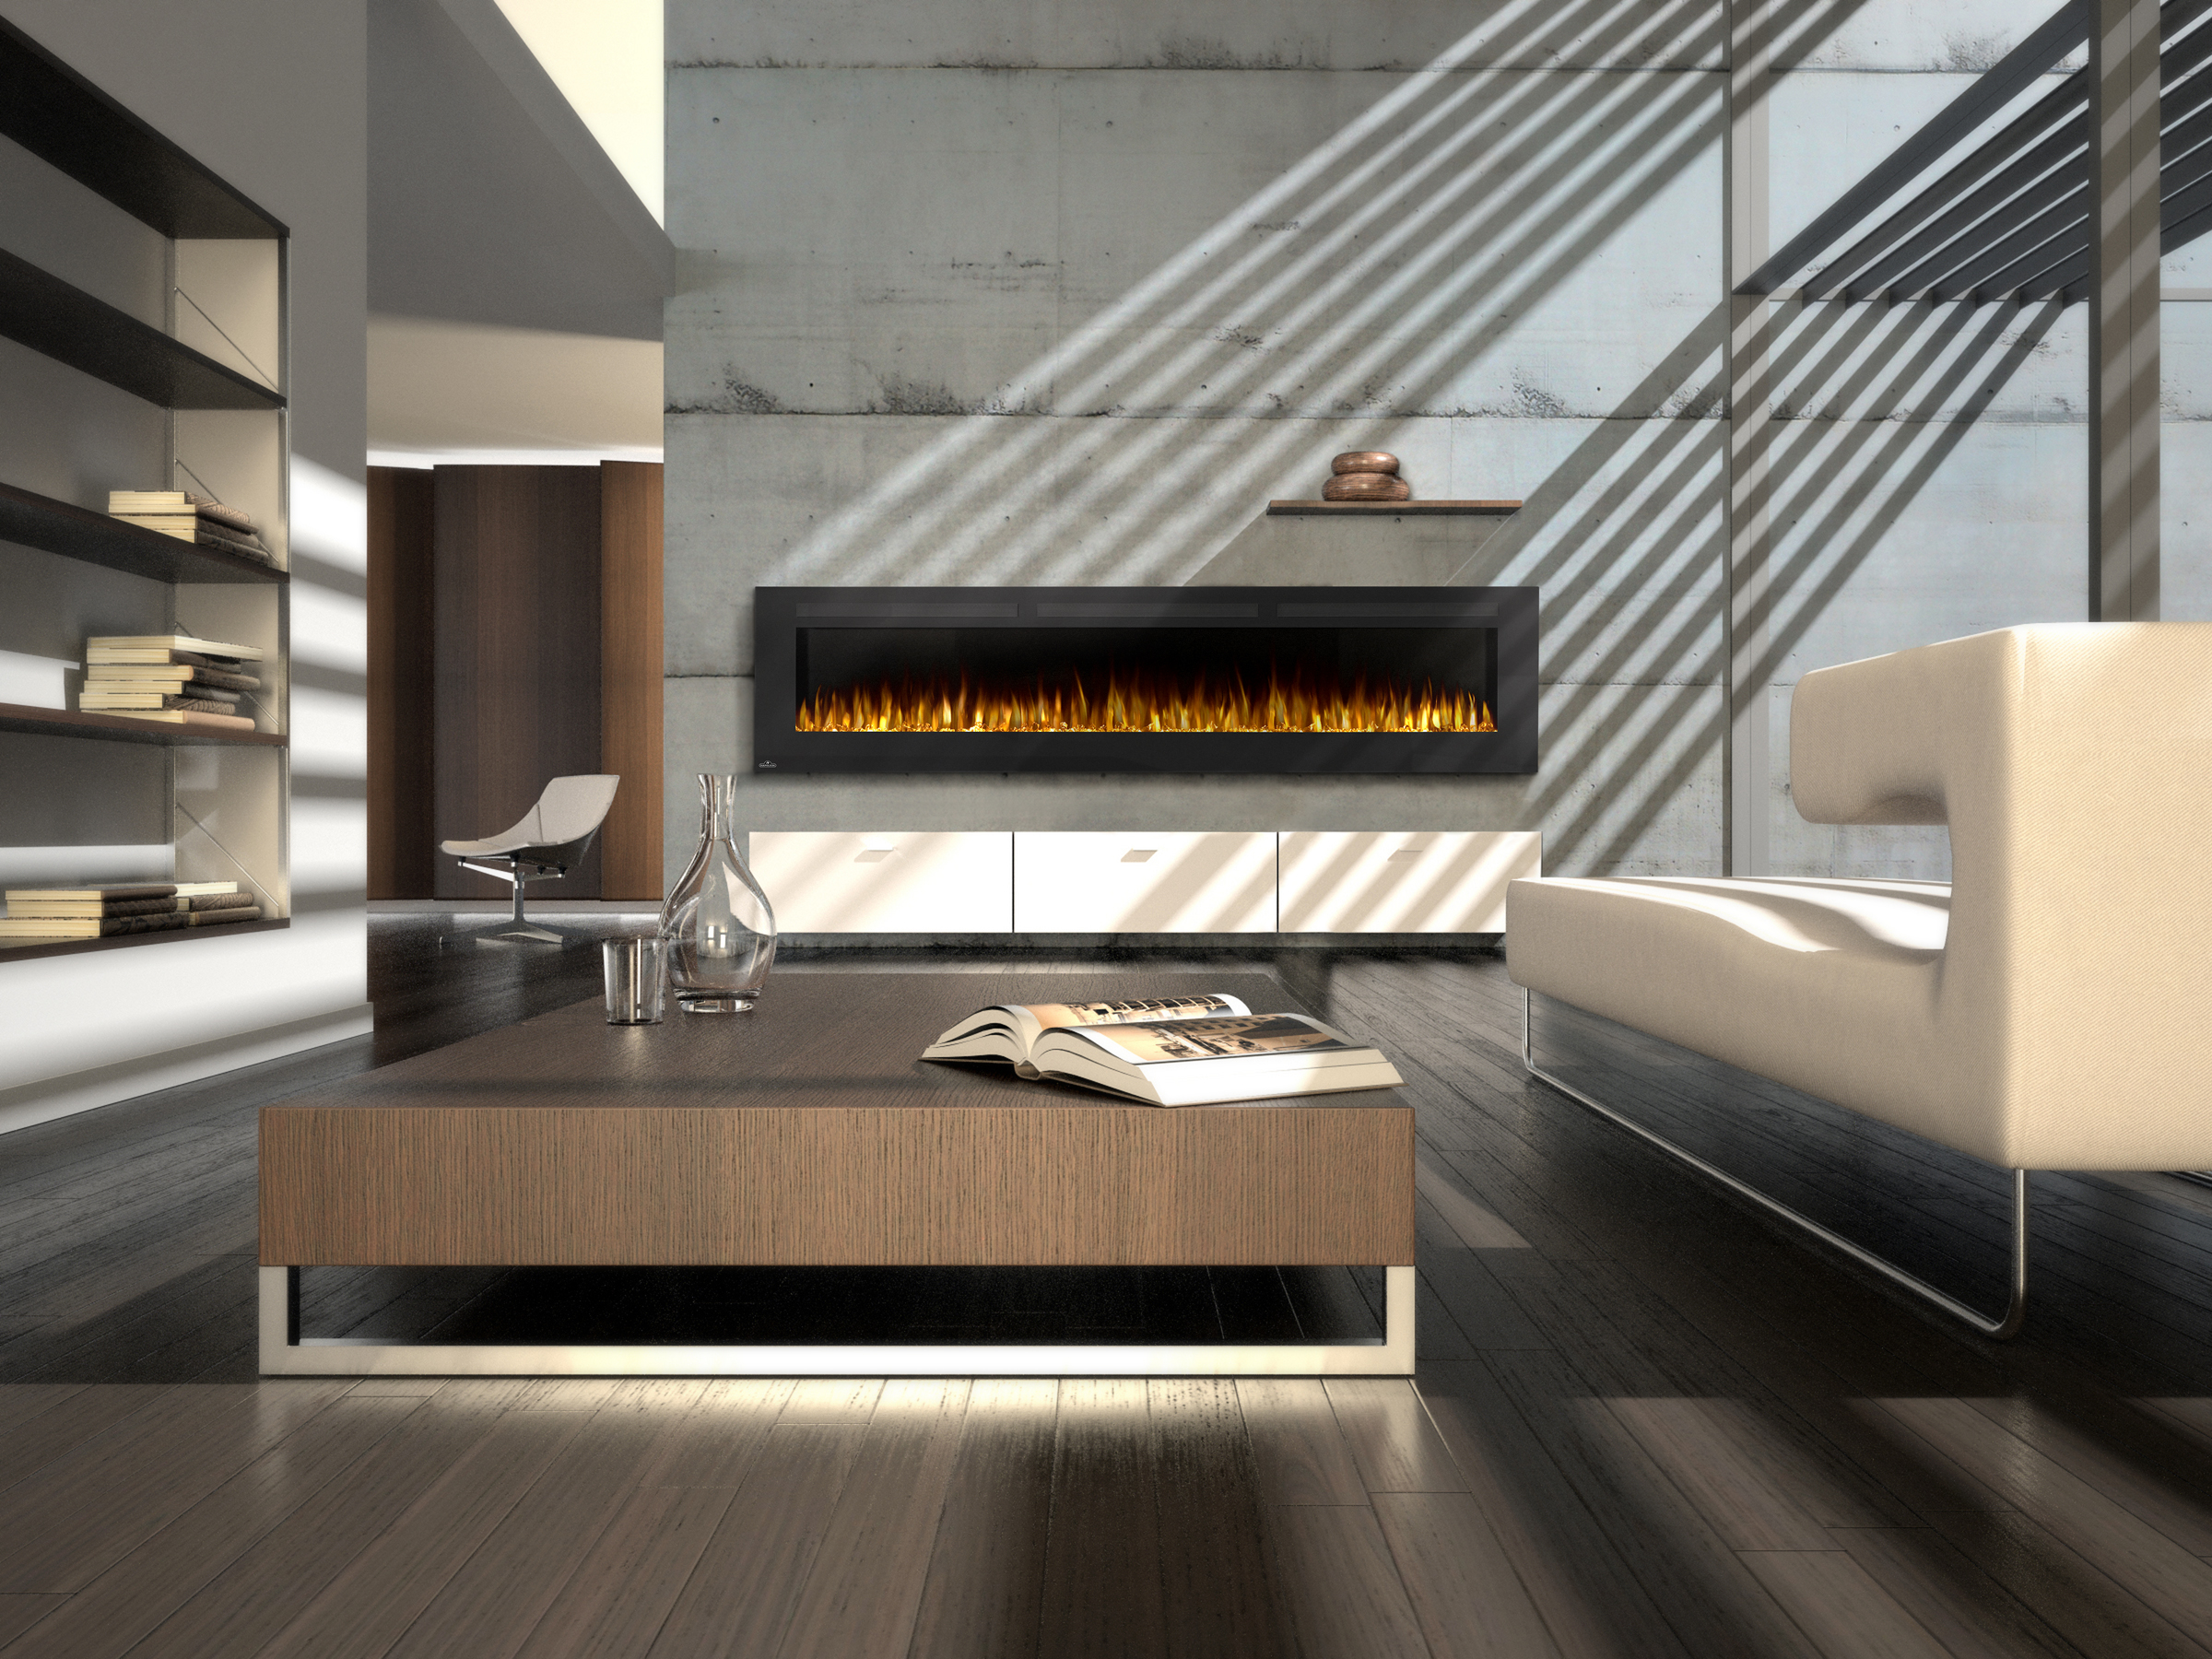 allure-100-living-room-napoleon-fireplaces.jpg